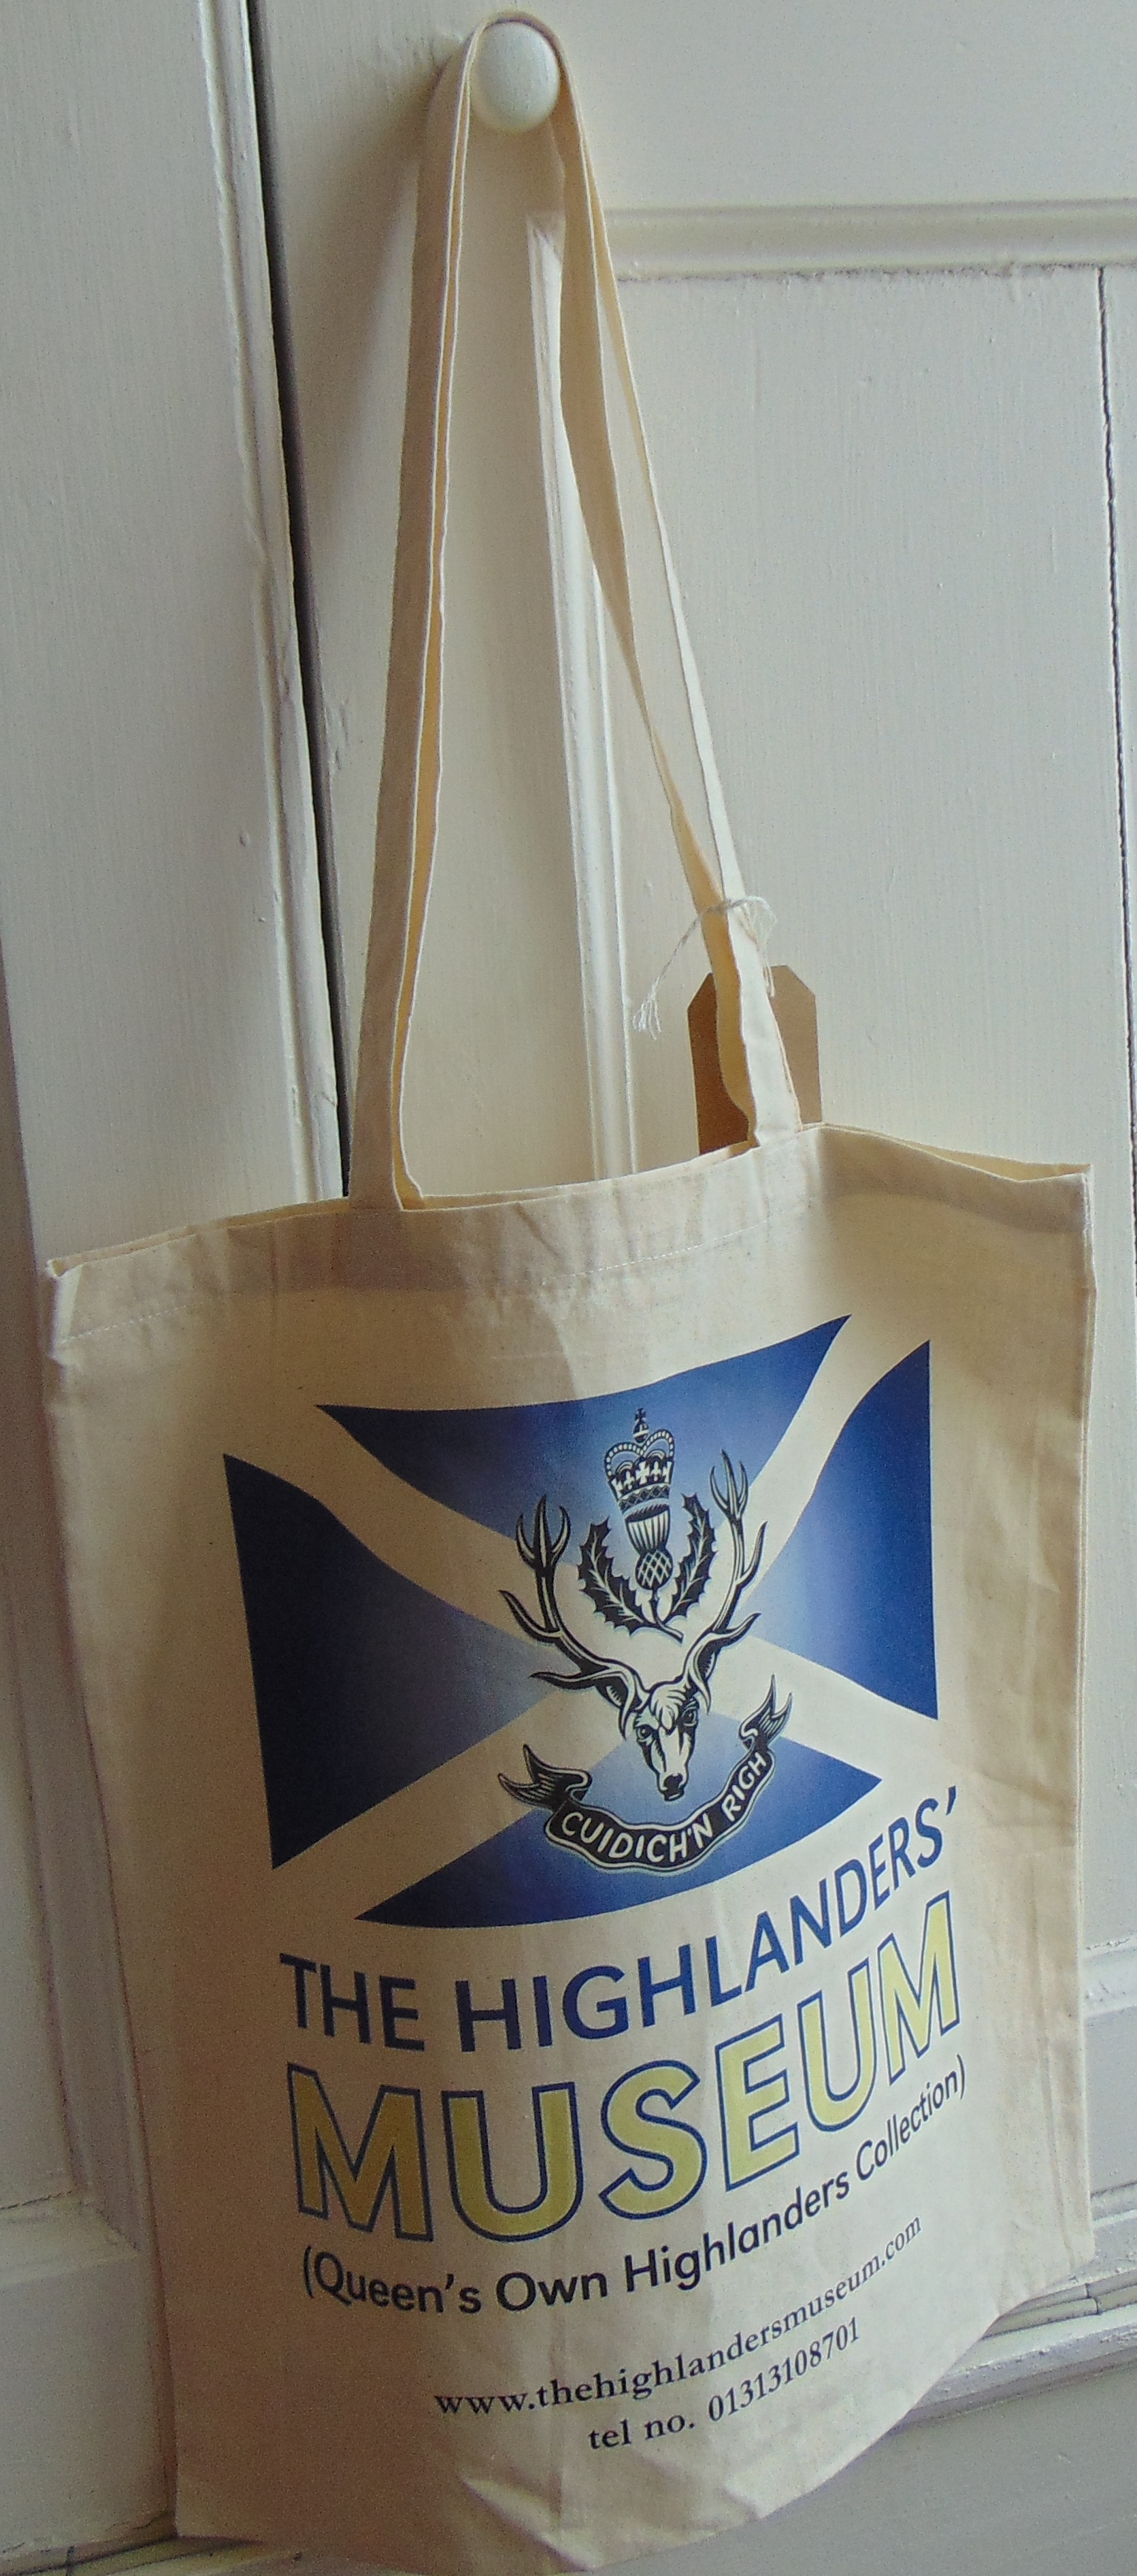 The Highlanders' Museum Cotton Bag